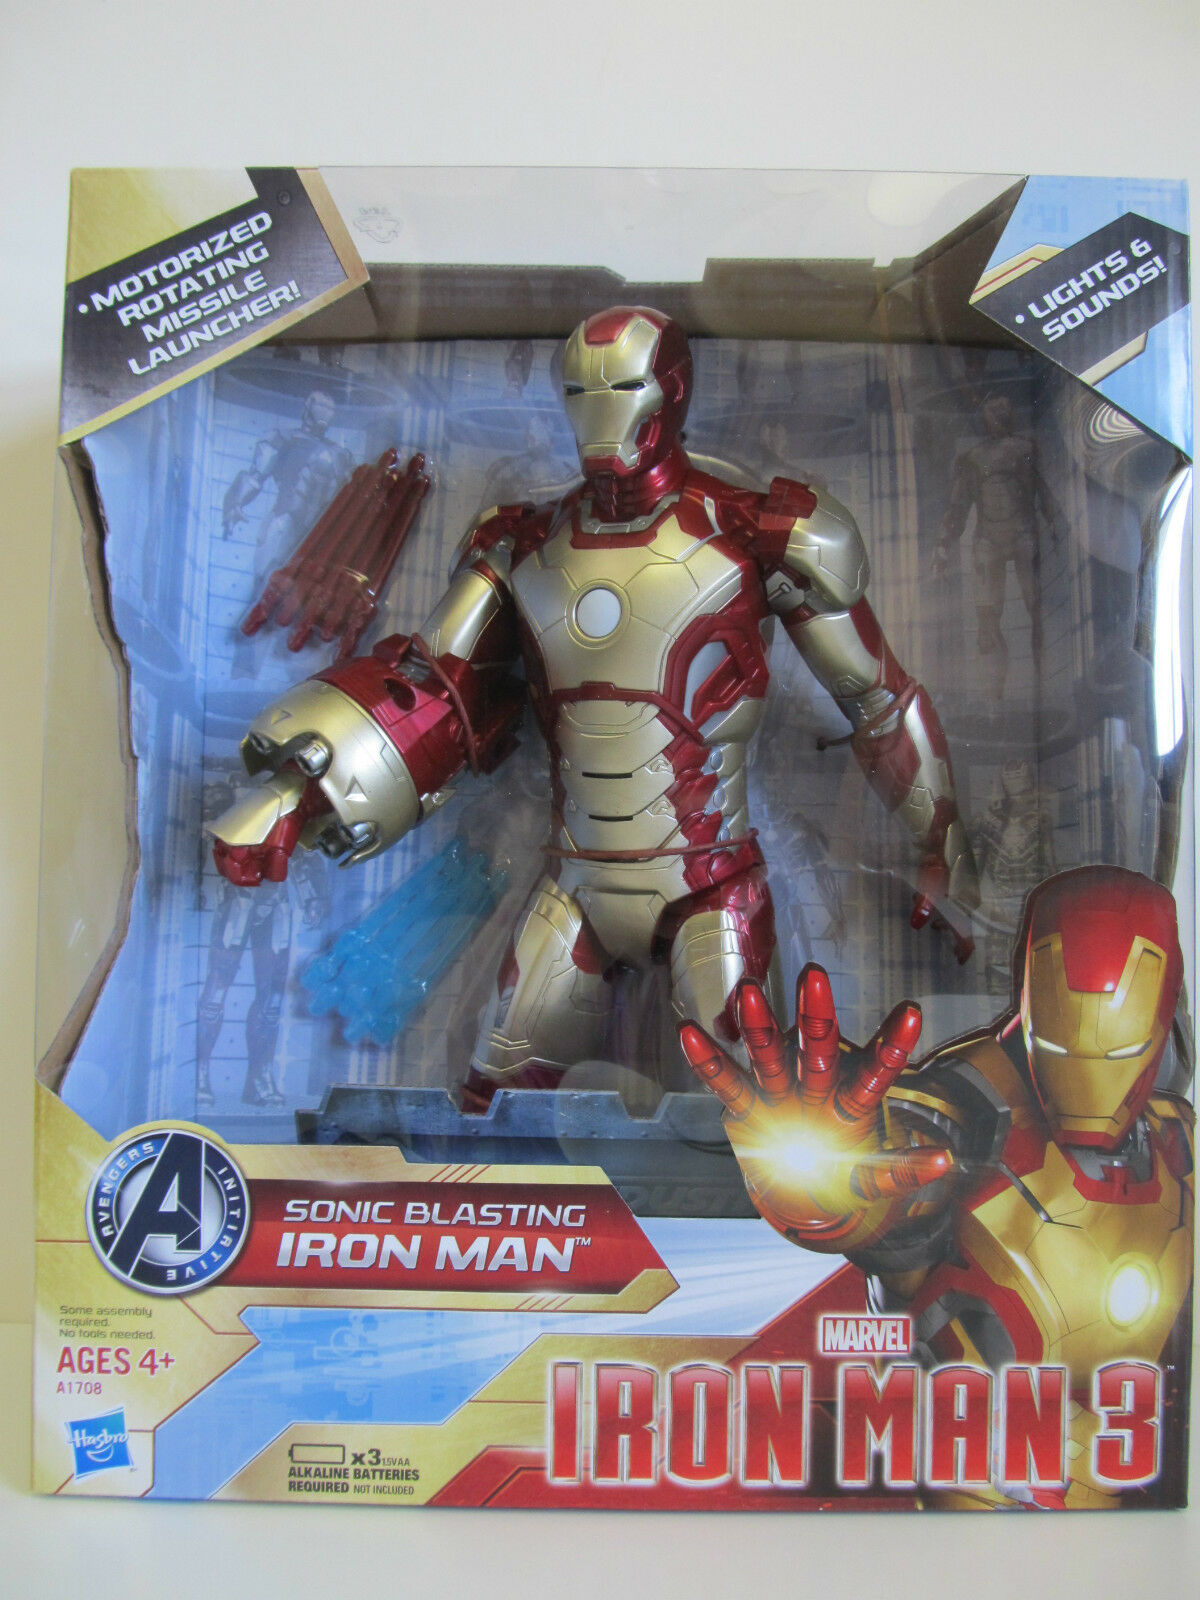 Marvel Sonic Blasting Iron Man 3 Action Figure w/ Missile Launch Lights & Sound